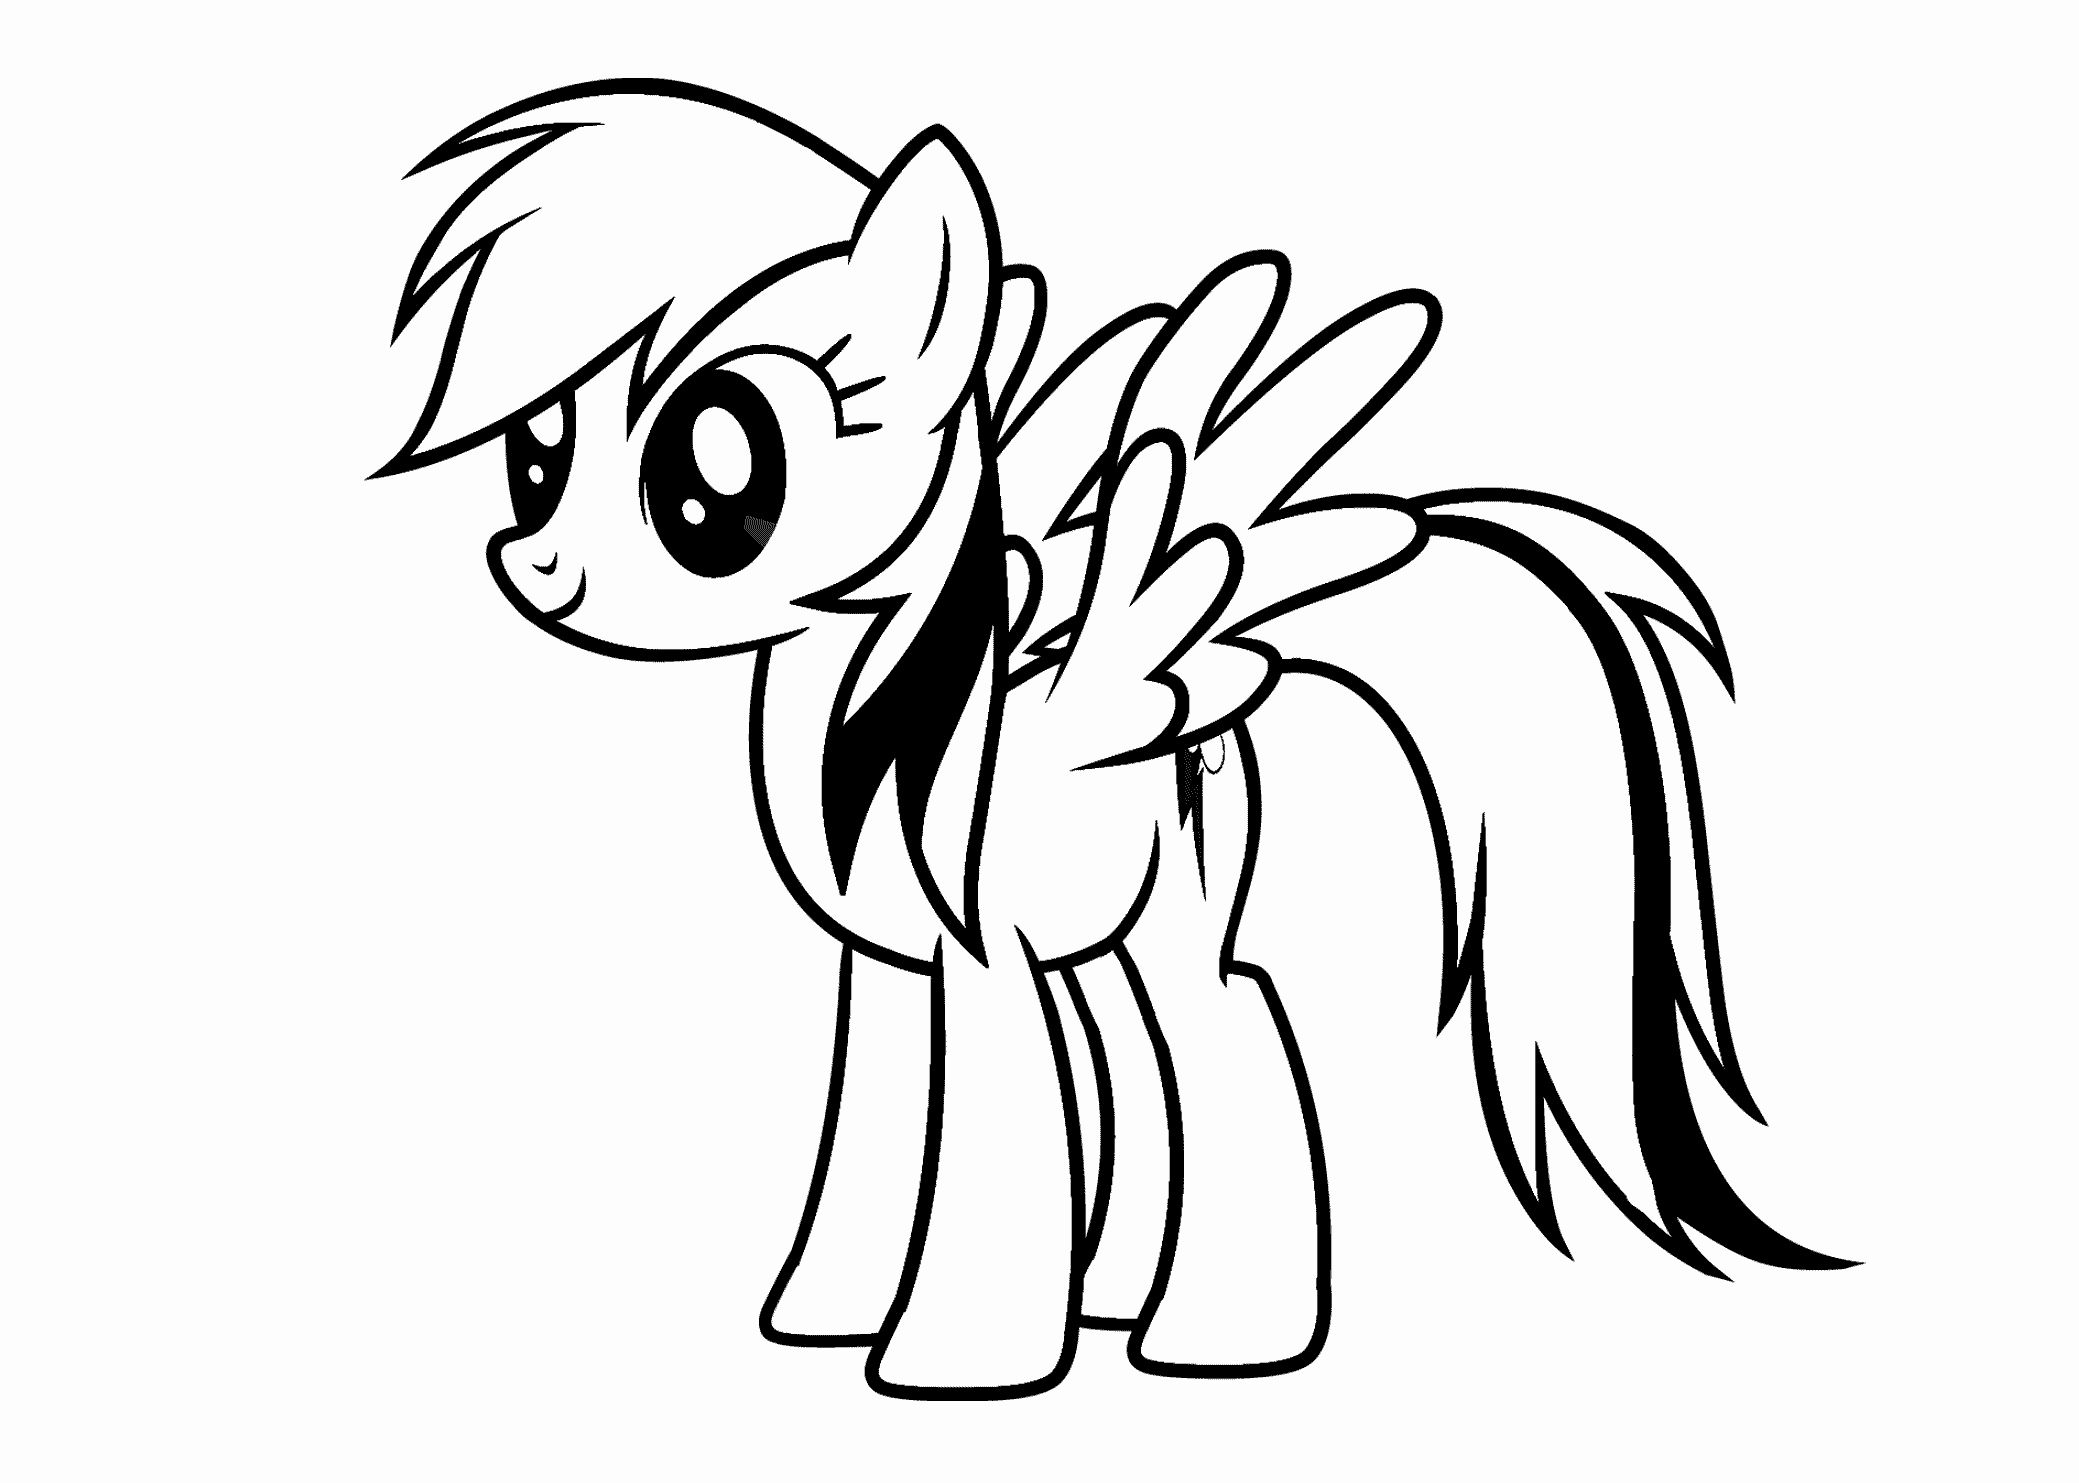 21 Rainbow Dash Coloring Page In 2020 My Little Pony Coloring My Little Pony Party Pony